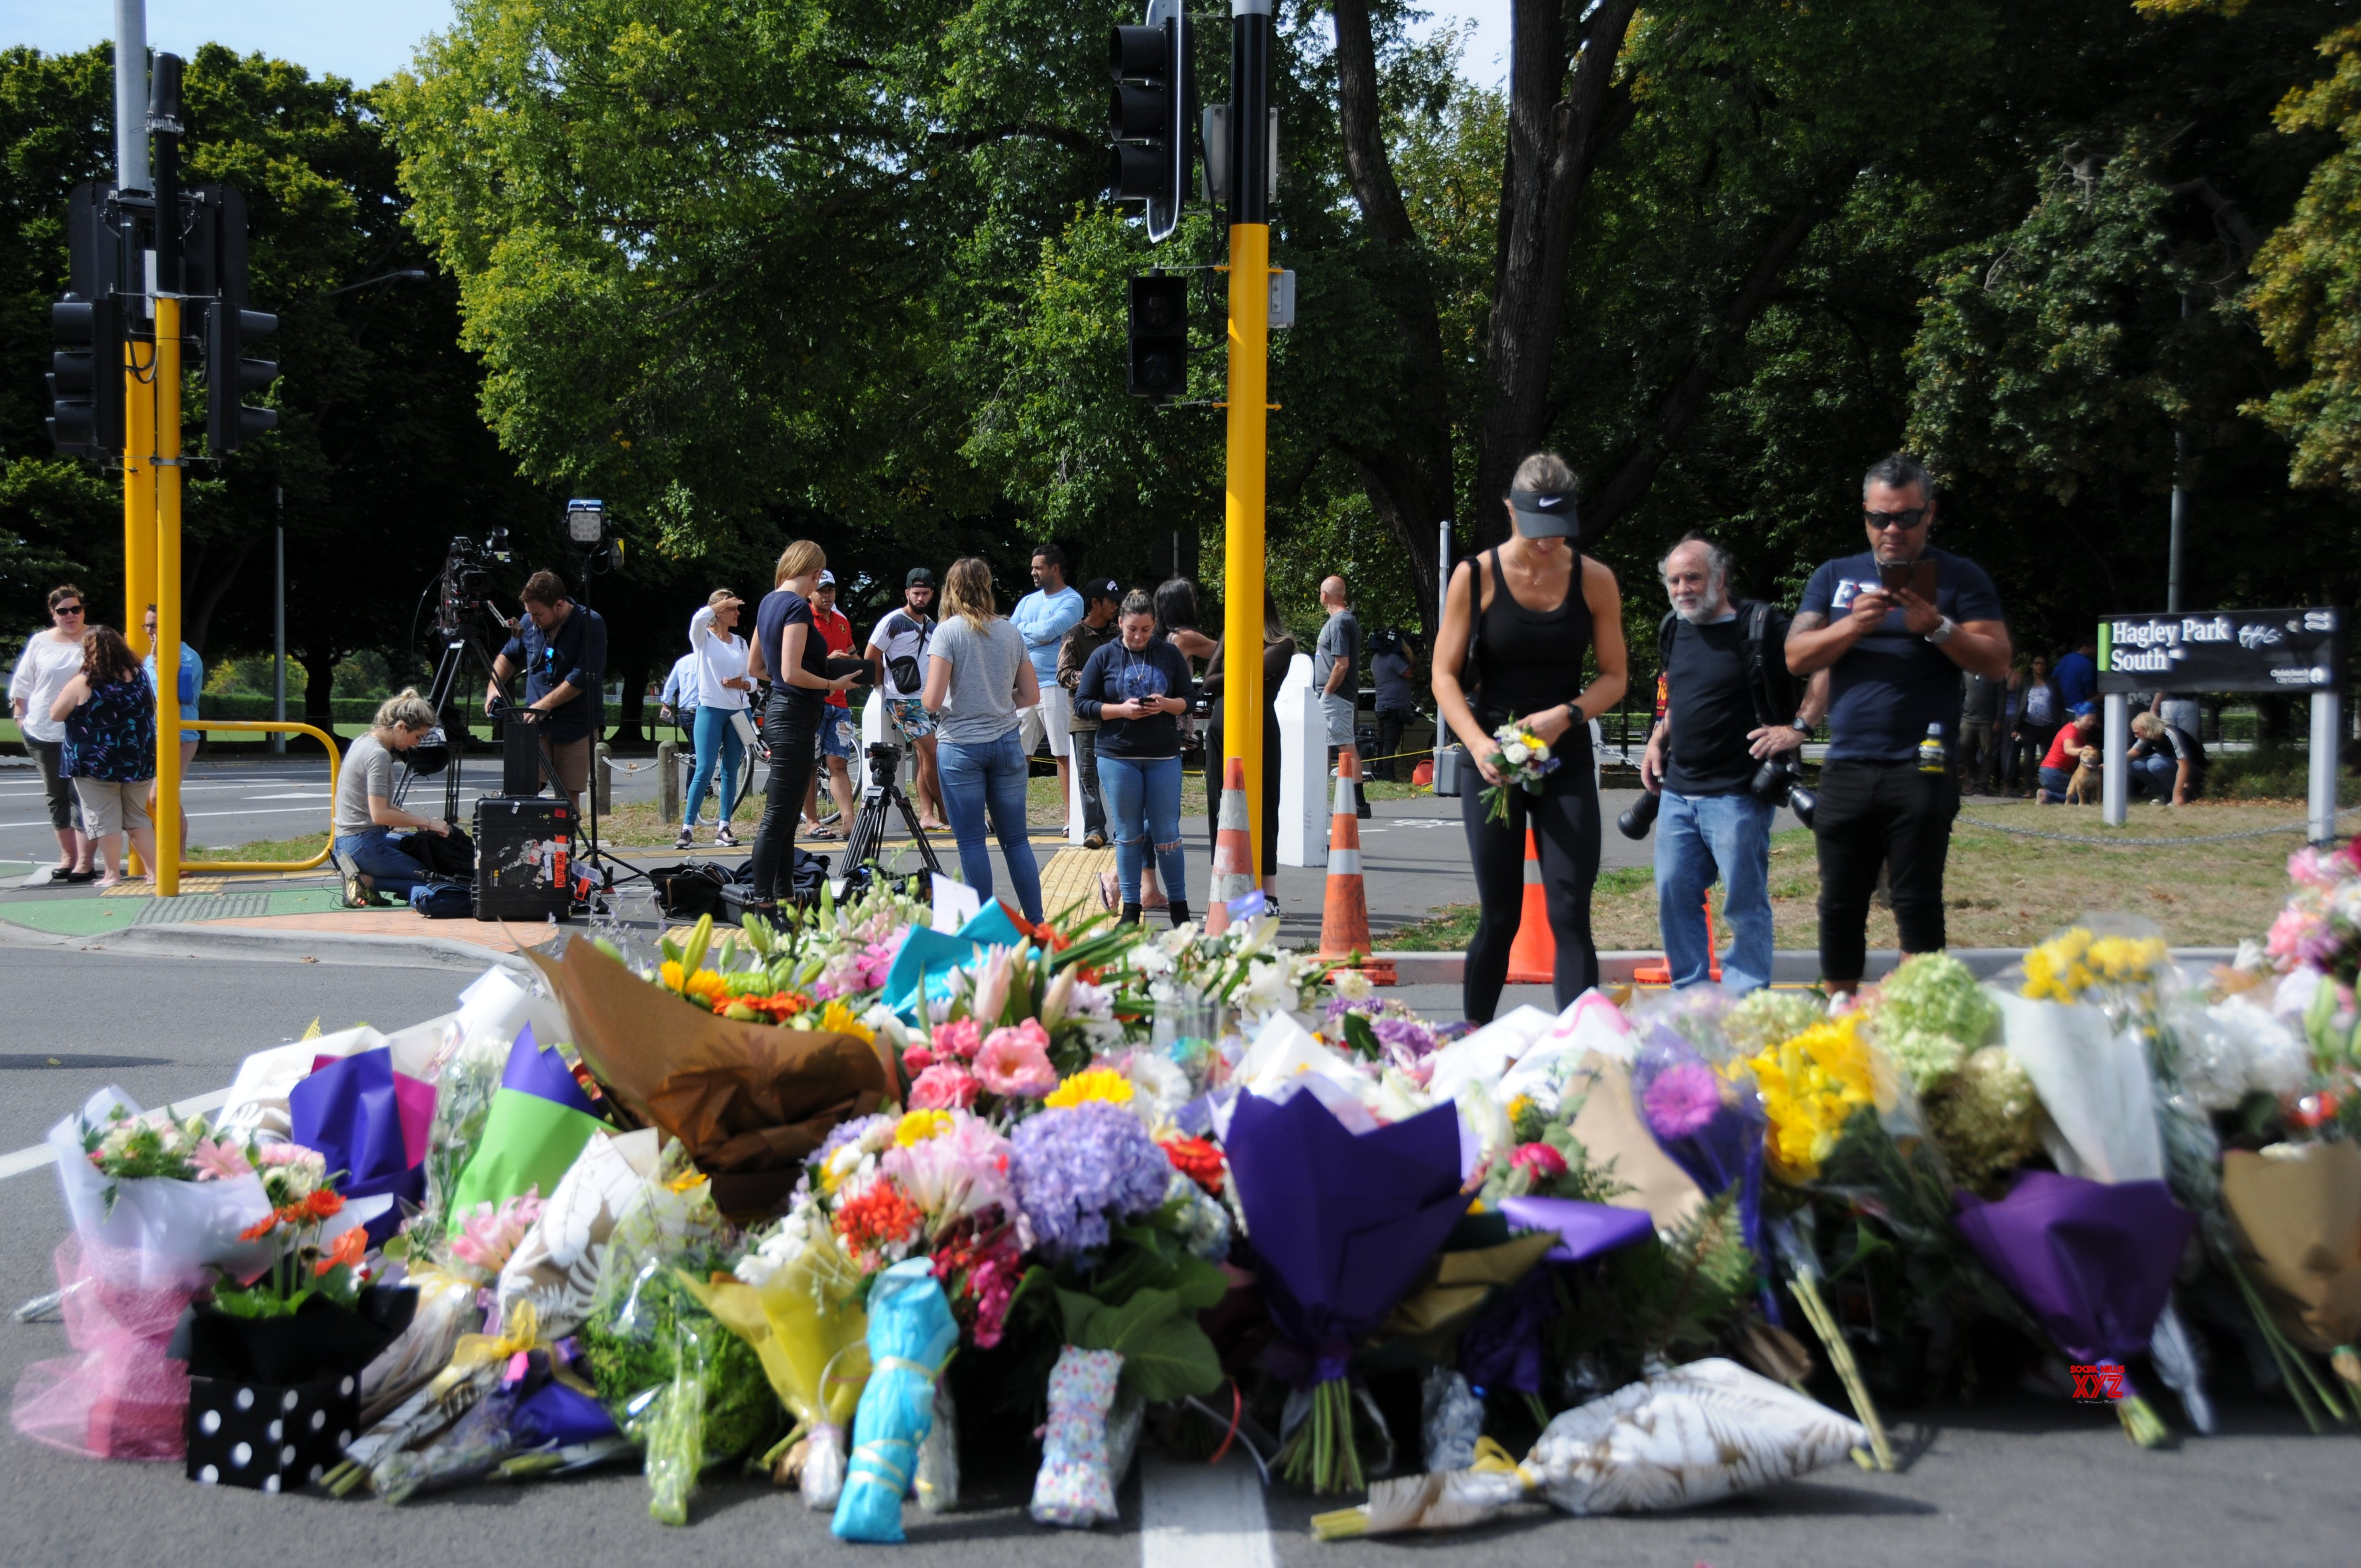 NEW ZEALAND - CHRISTCHURCH - MOURNING #Gallery